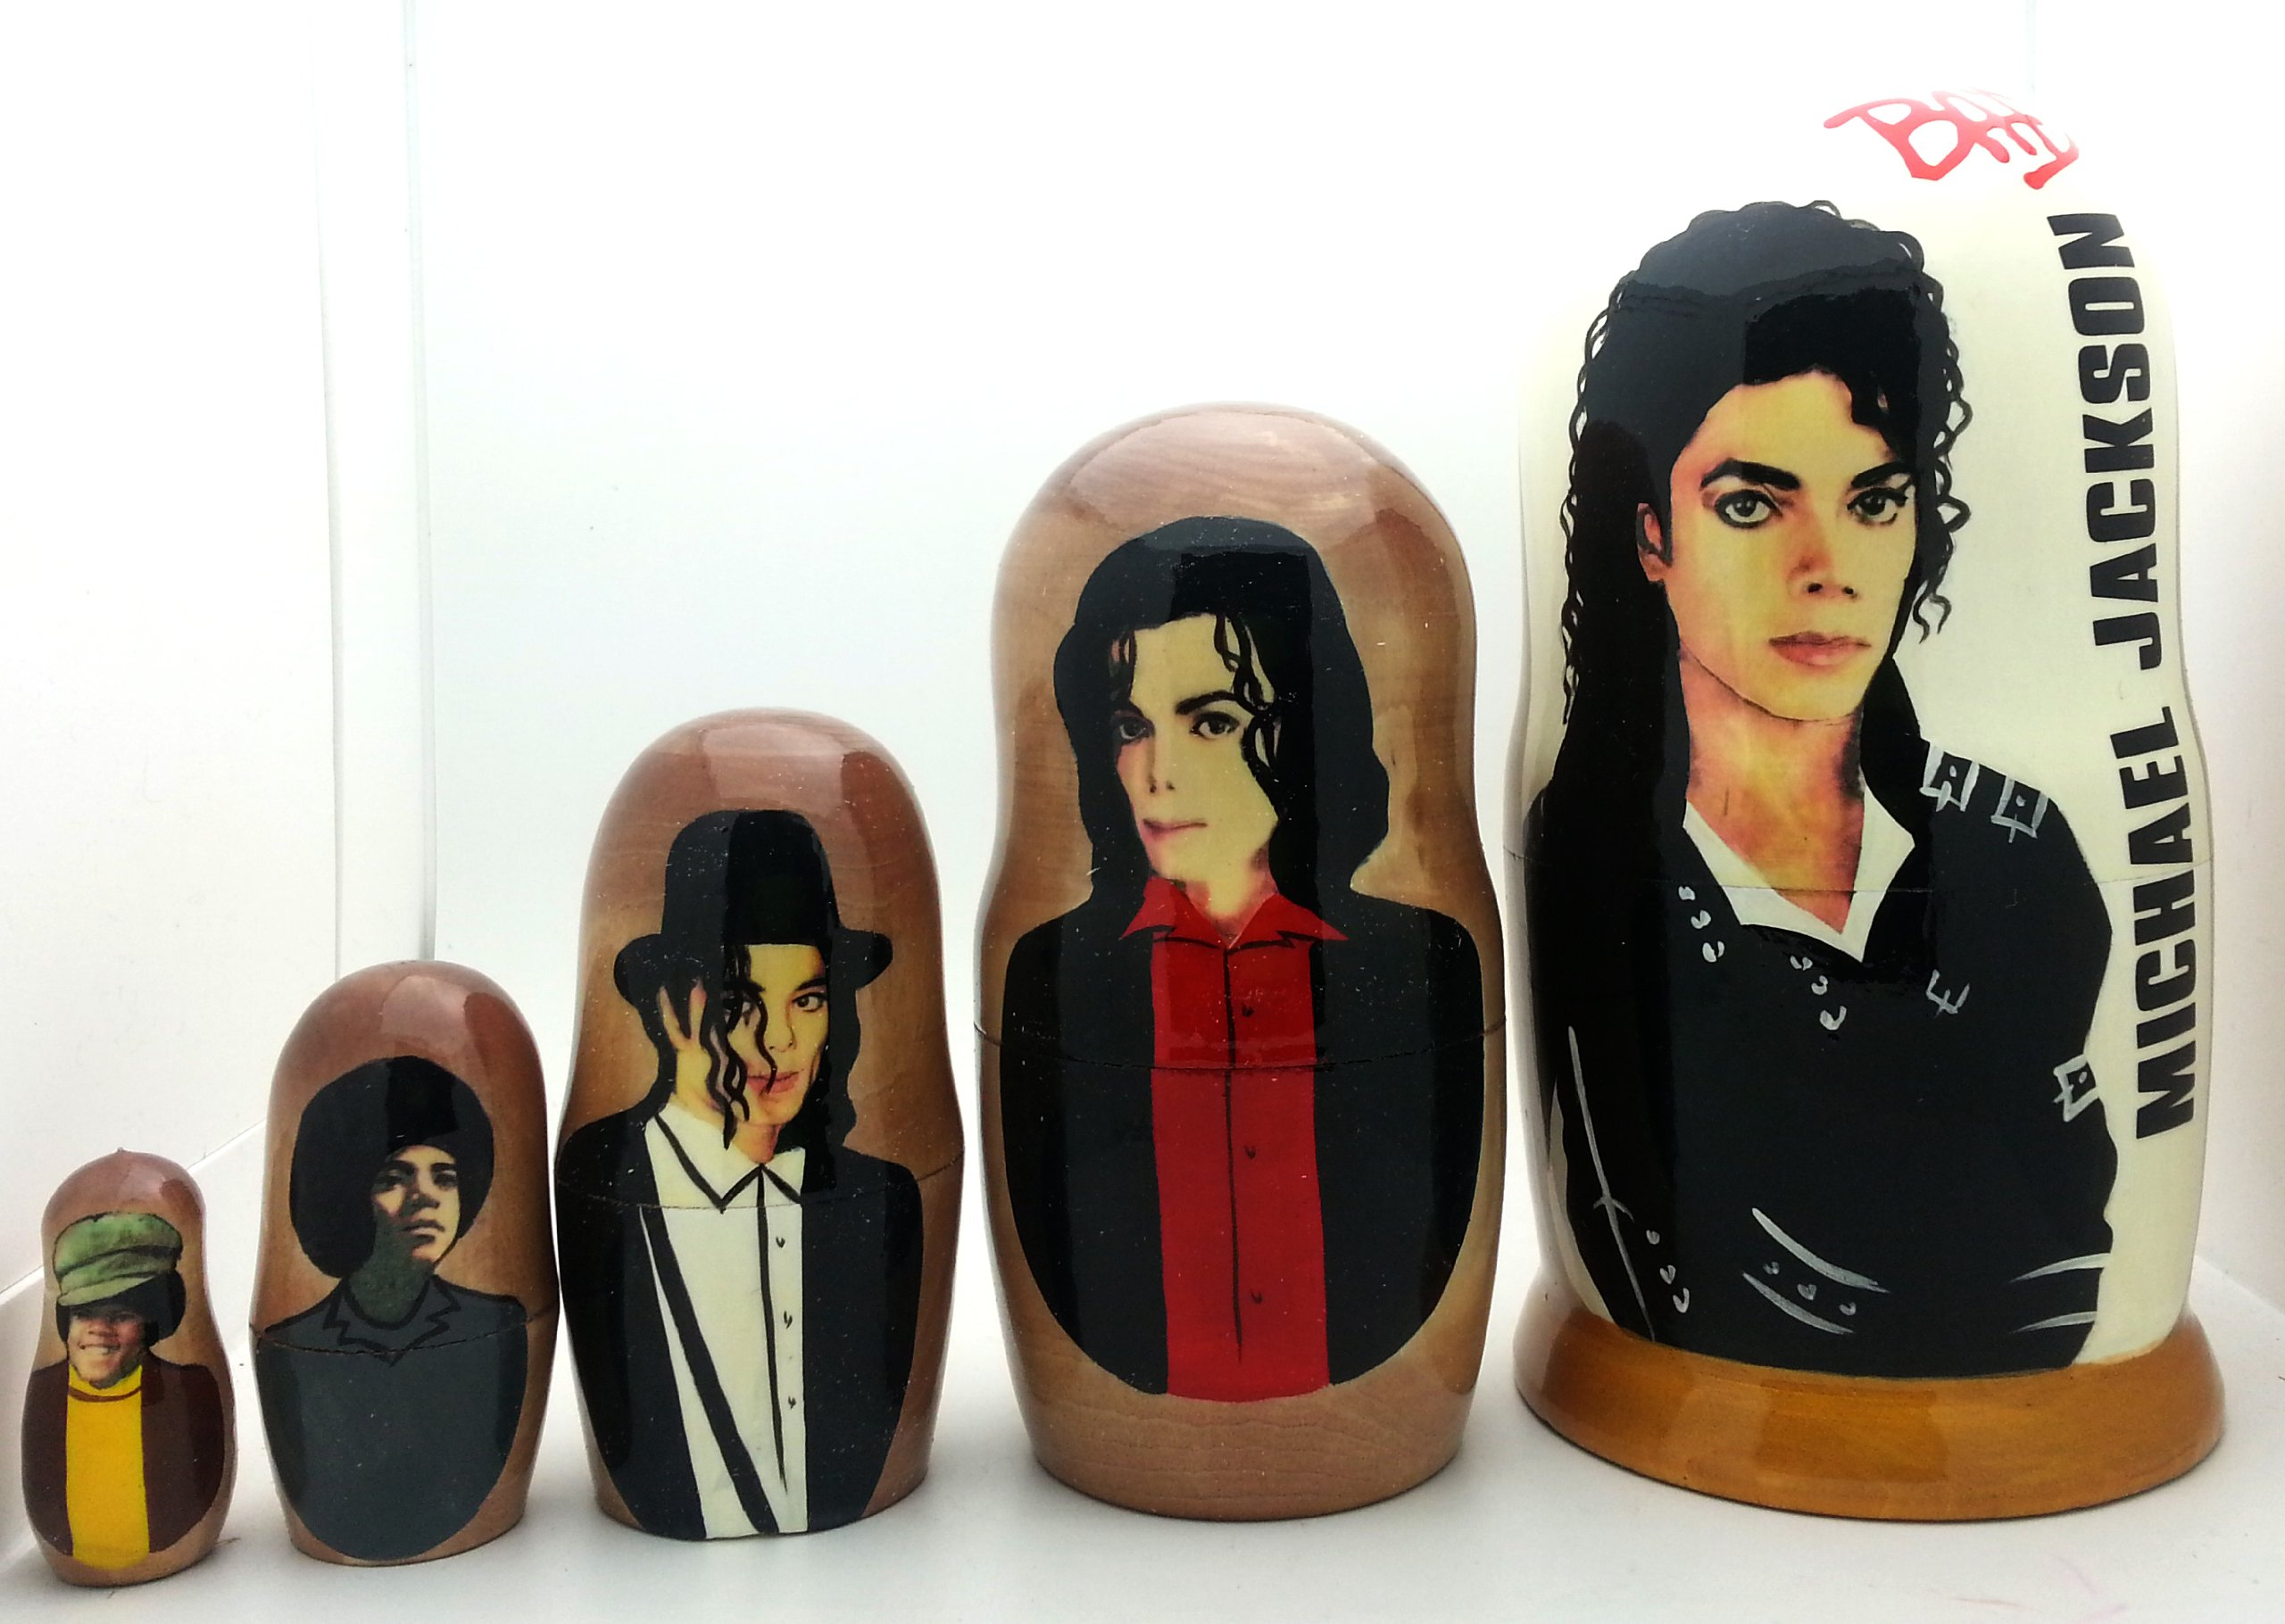 Michael Jackson BAD Russian Nesting dolls 5 piece DOLL Set 7'' by BuyRussianGifts